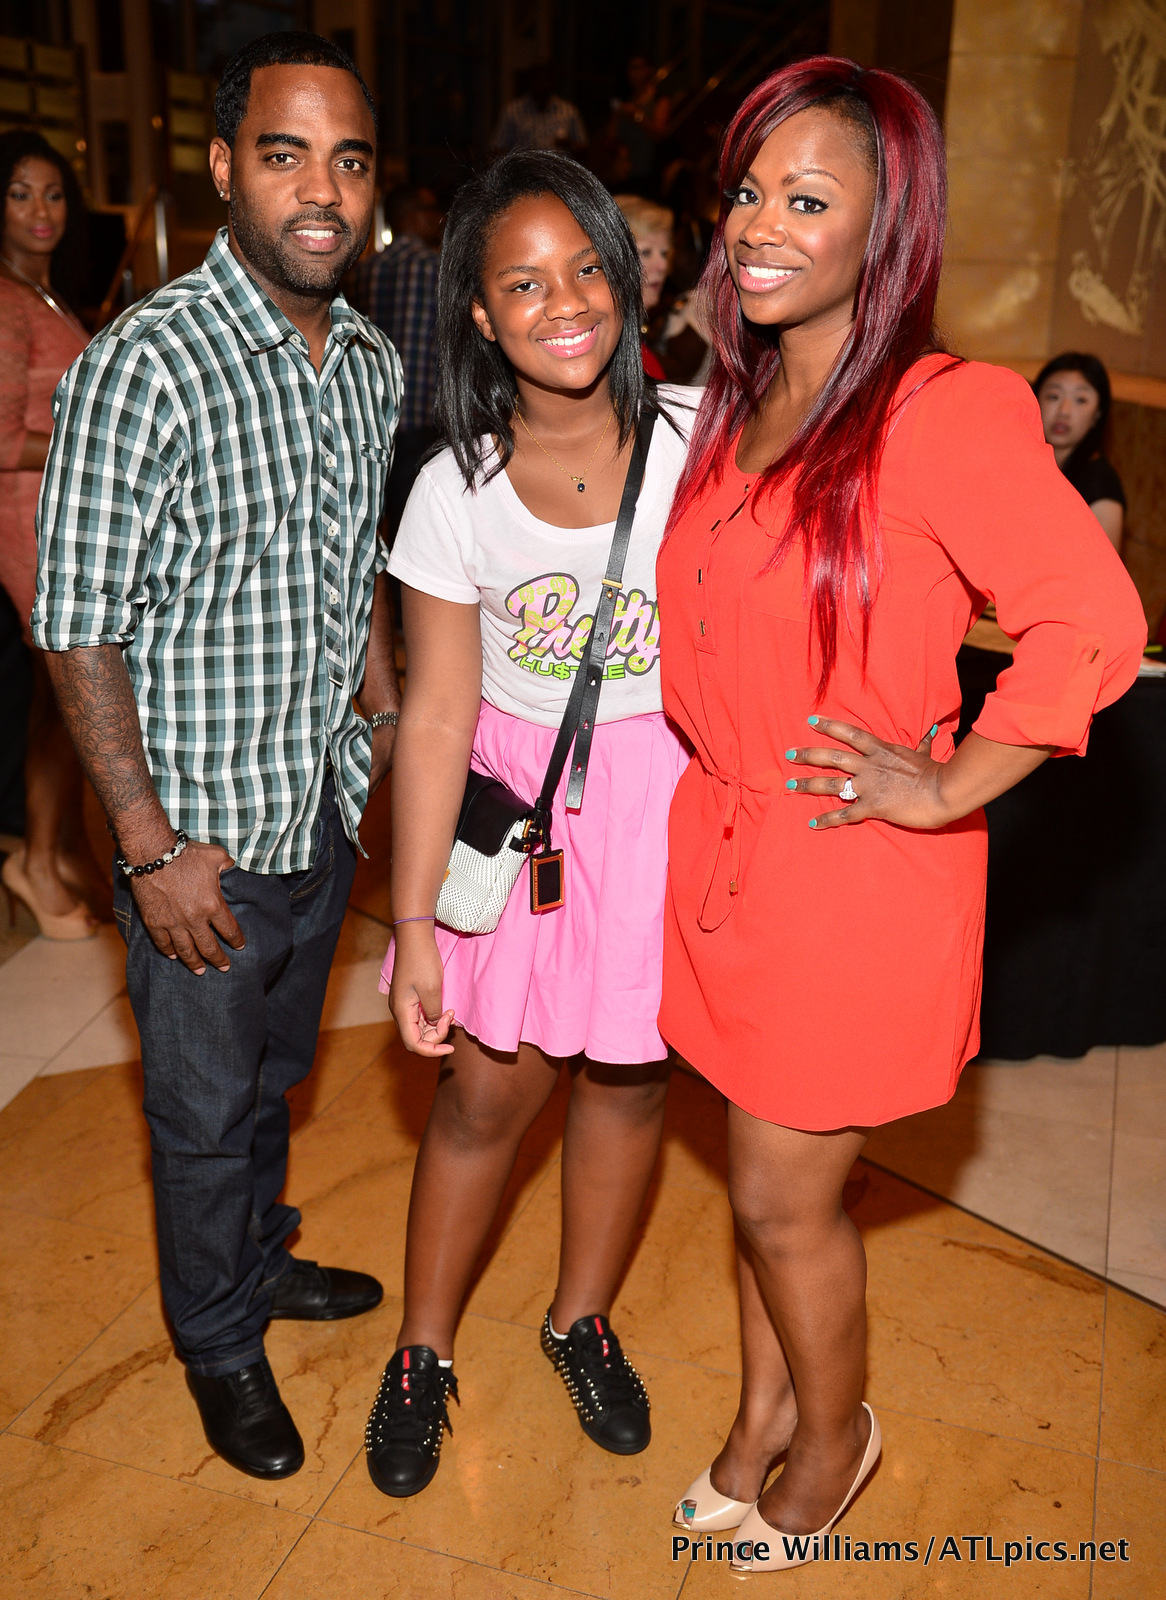 Kandi Burruss Fiance Daughter Killed